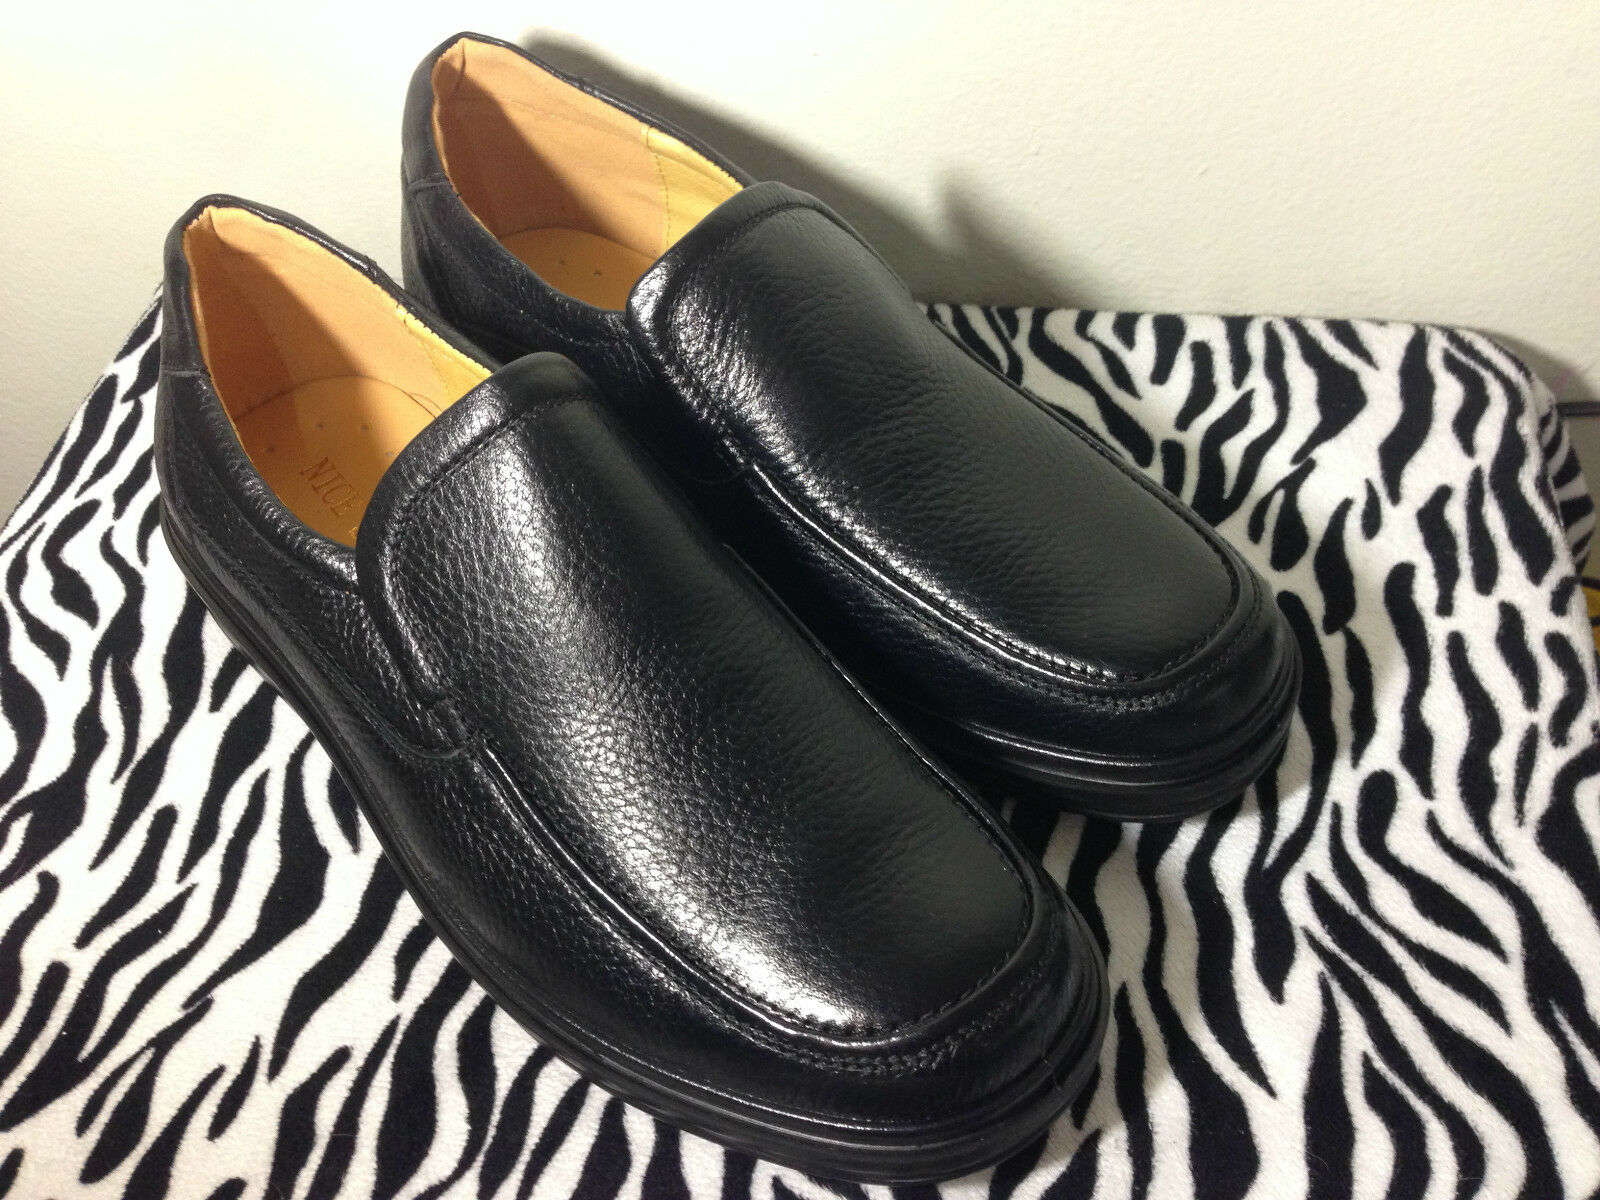 New Formal Dress Leather Working Size Men Black Nice Shoes Size Working 38,39,42,43,44 c18c56